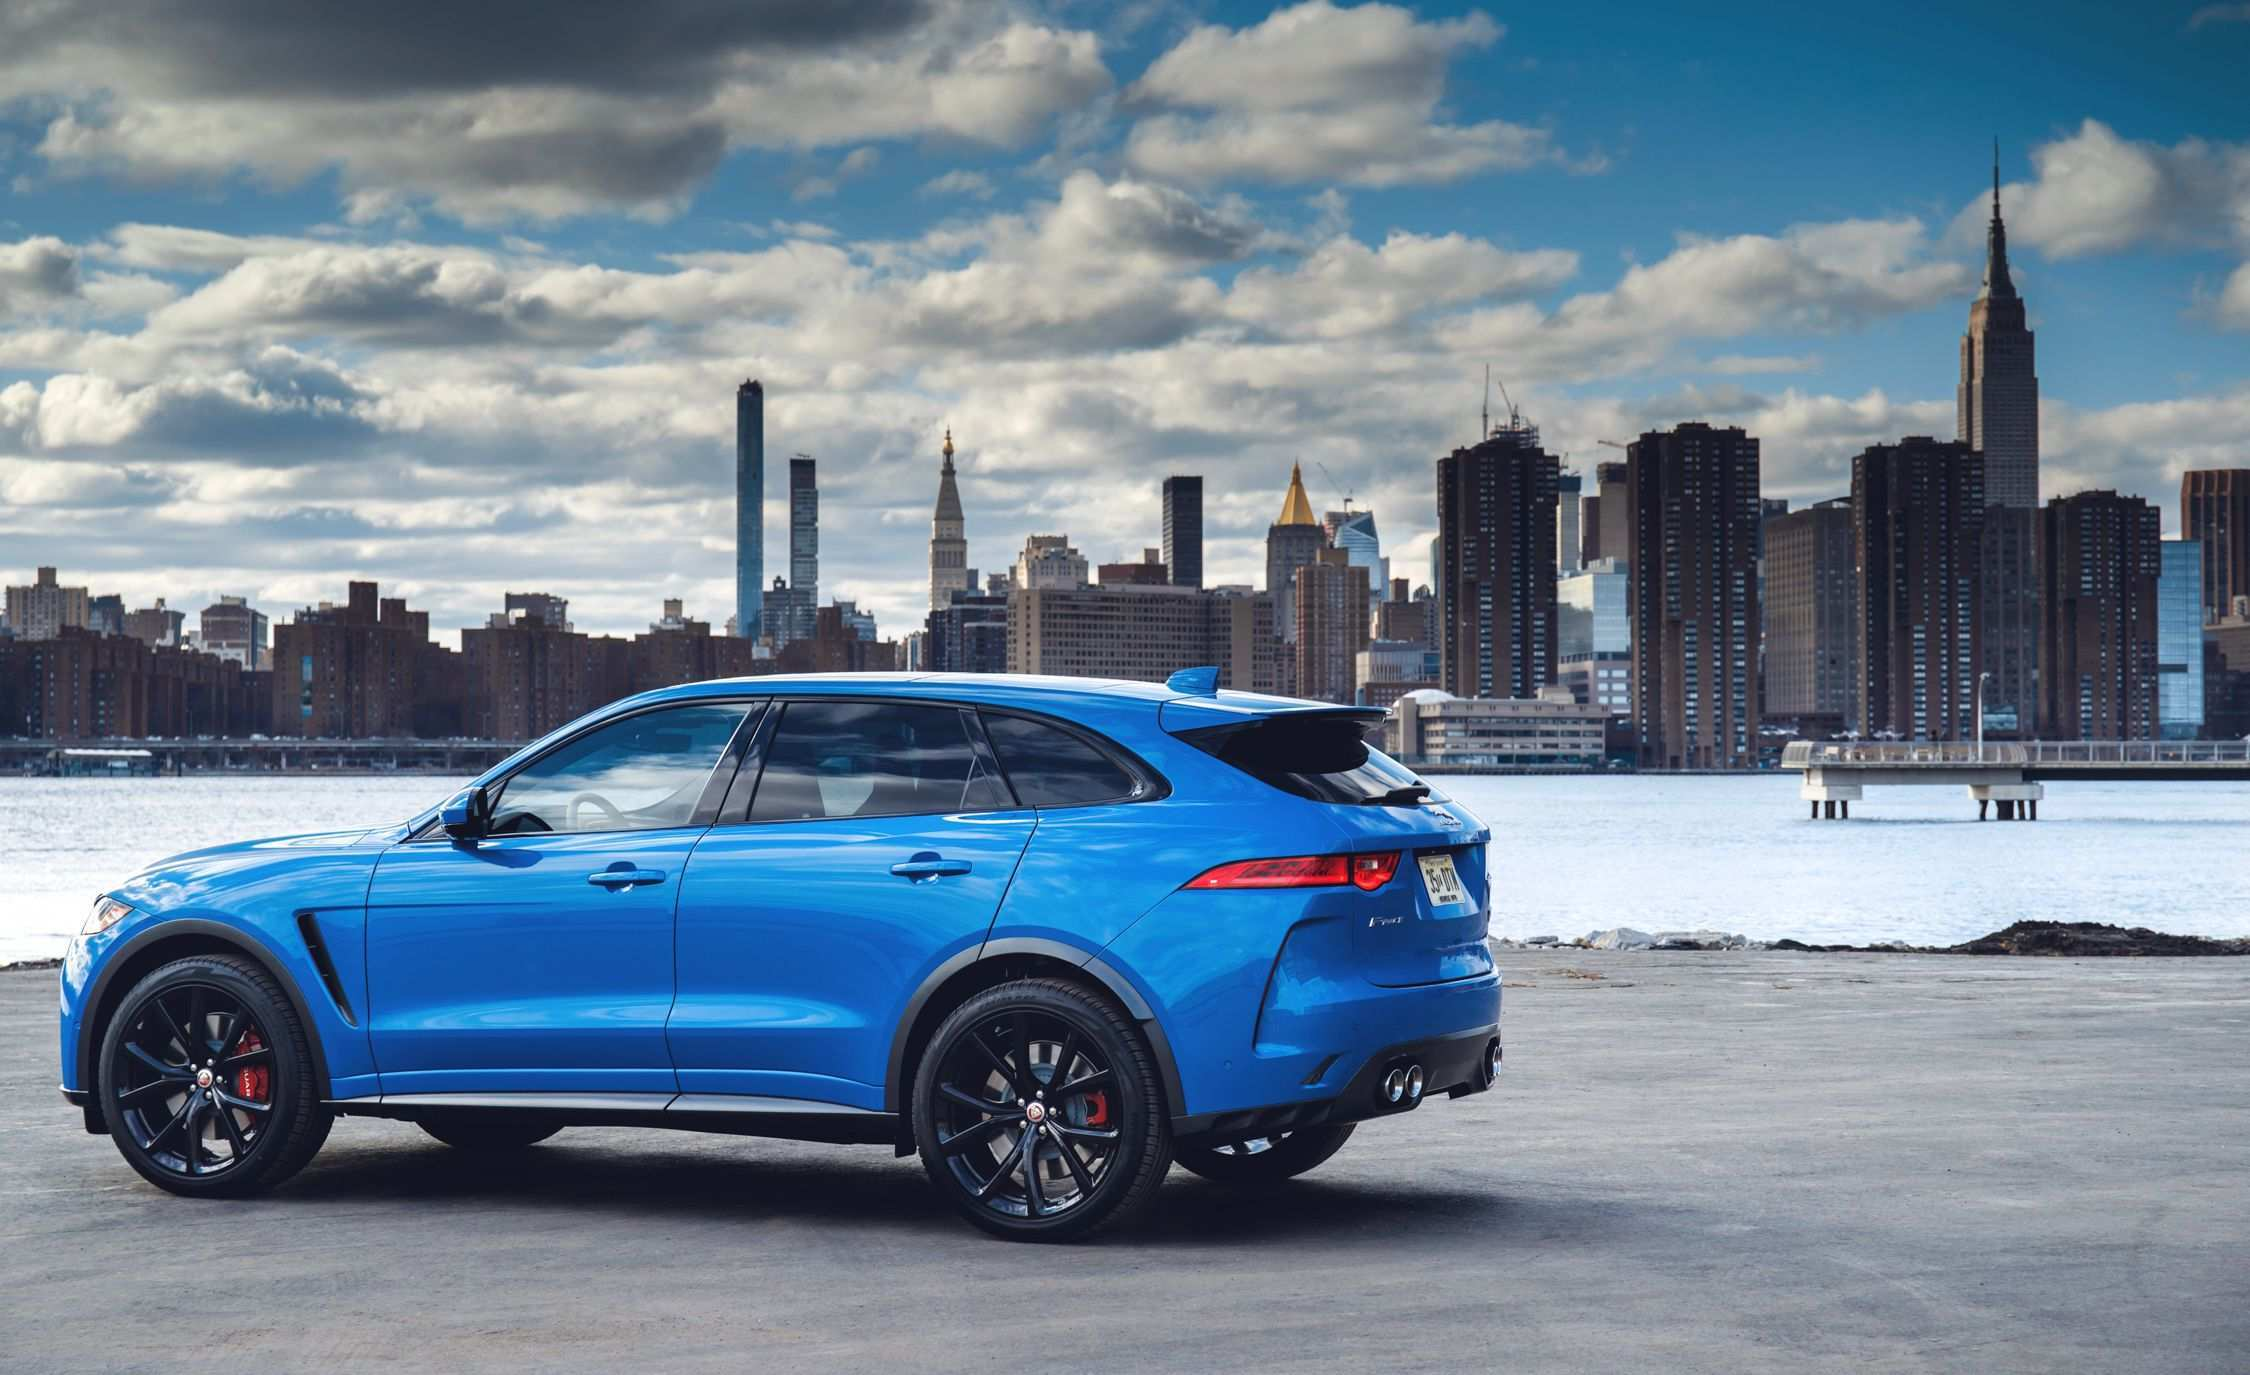 24 All New 2019 Jaguar F Pace Svr Price Price Spy Shoot for 2019 Jaguar F Pace Svr Price Price